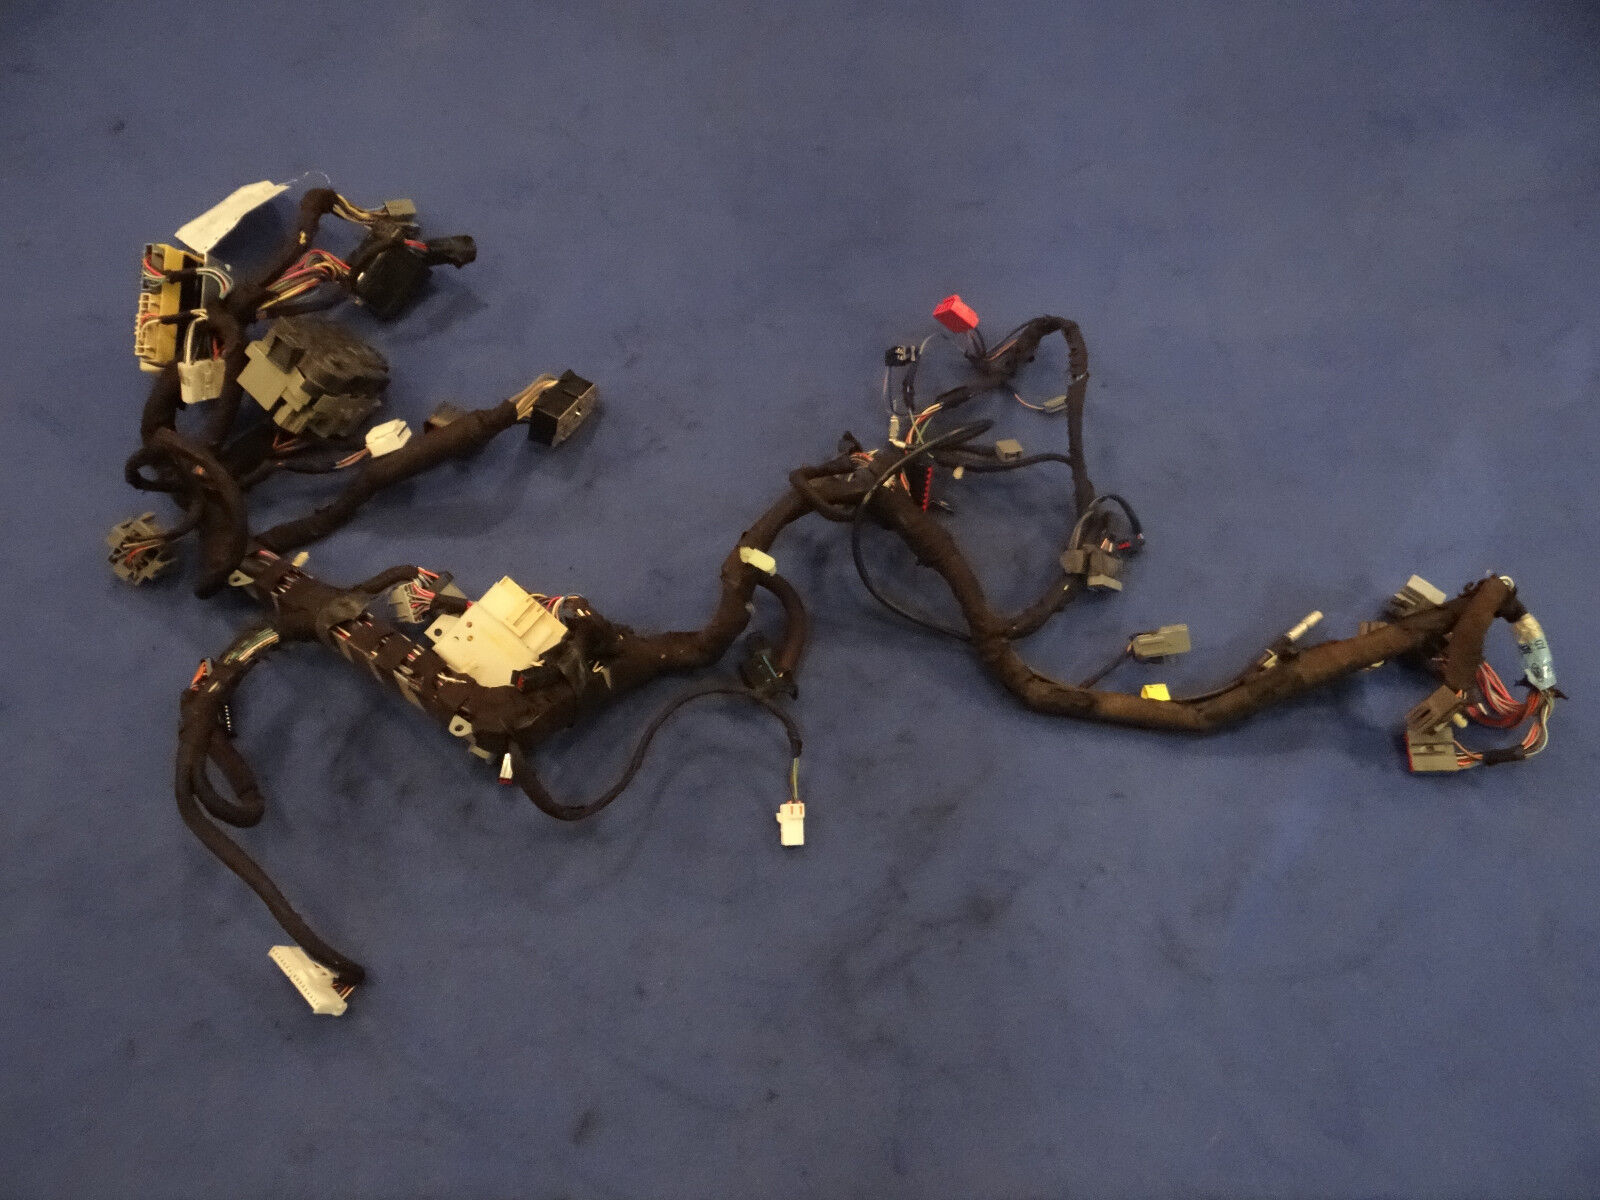 Computer And Wiring Harness 1994 Mustang Gt 43 Diagram 1995 Ford 5 0 Engine 57set Id8800005007 Used Other Engines Components For Sale